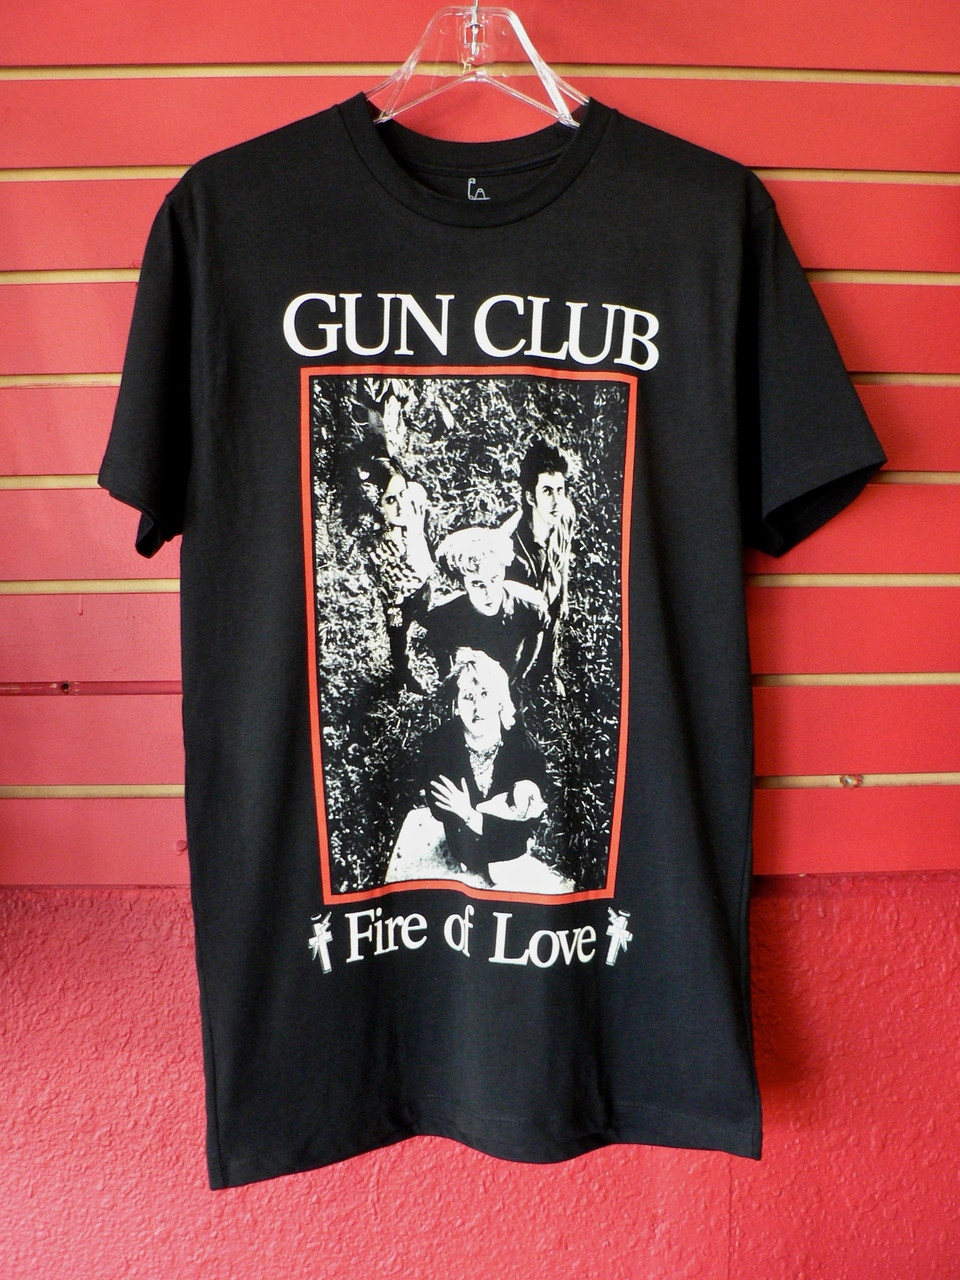 The Gun Club Fire Of Love T Shirt Made By Lethal